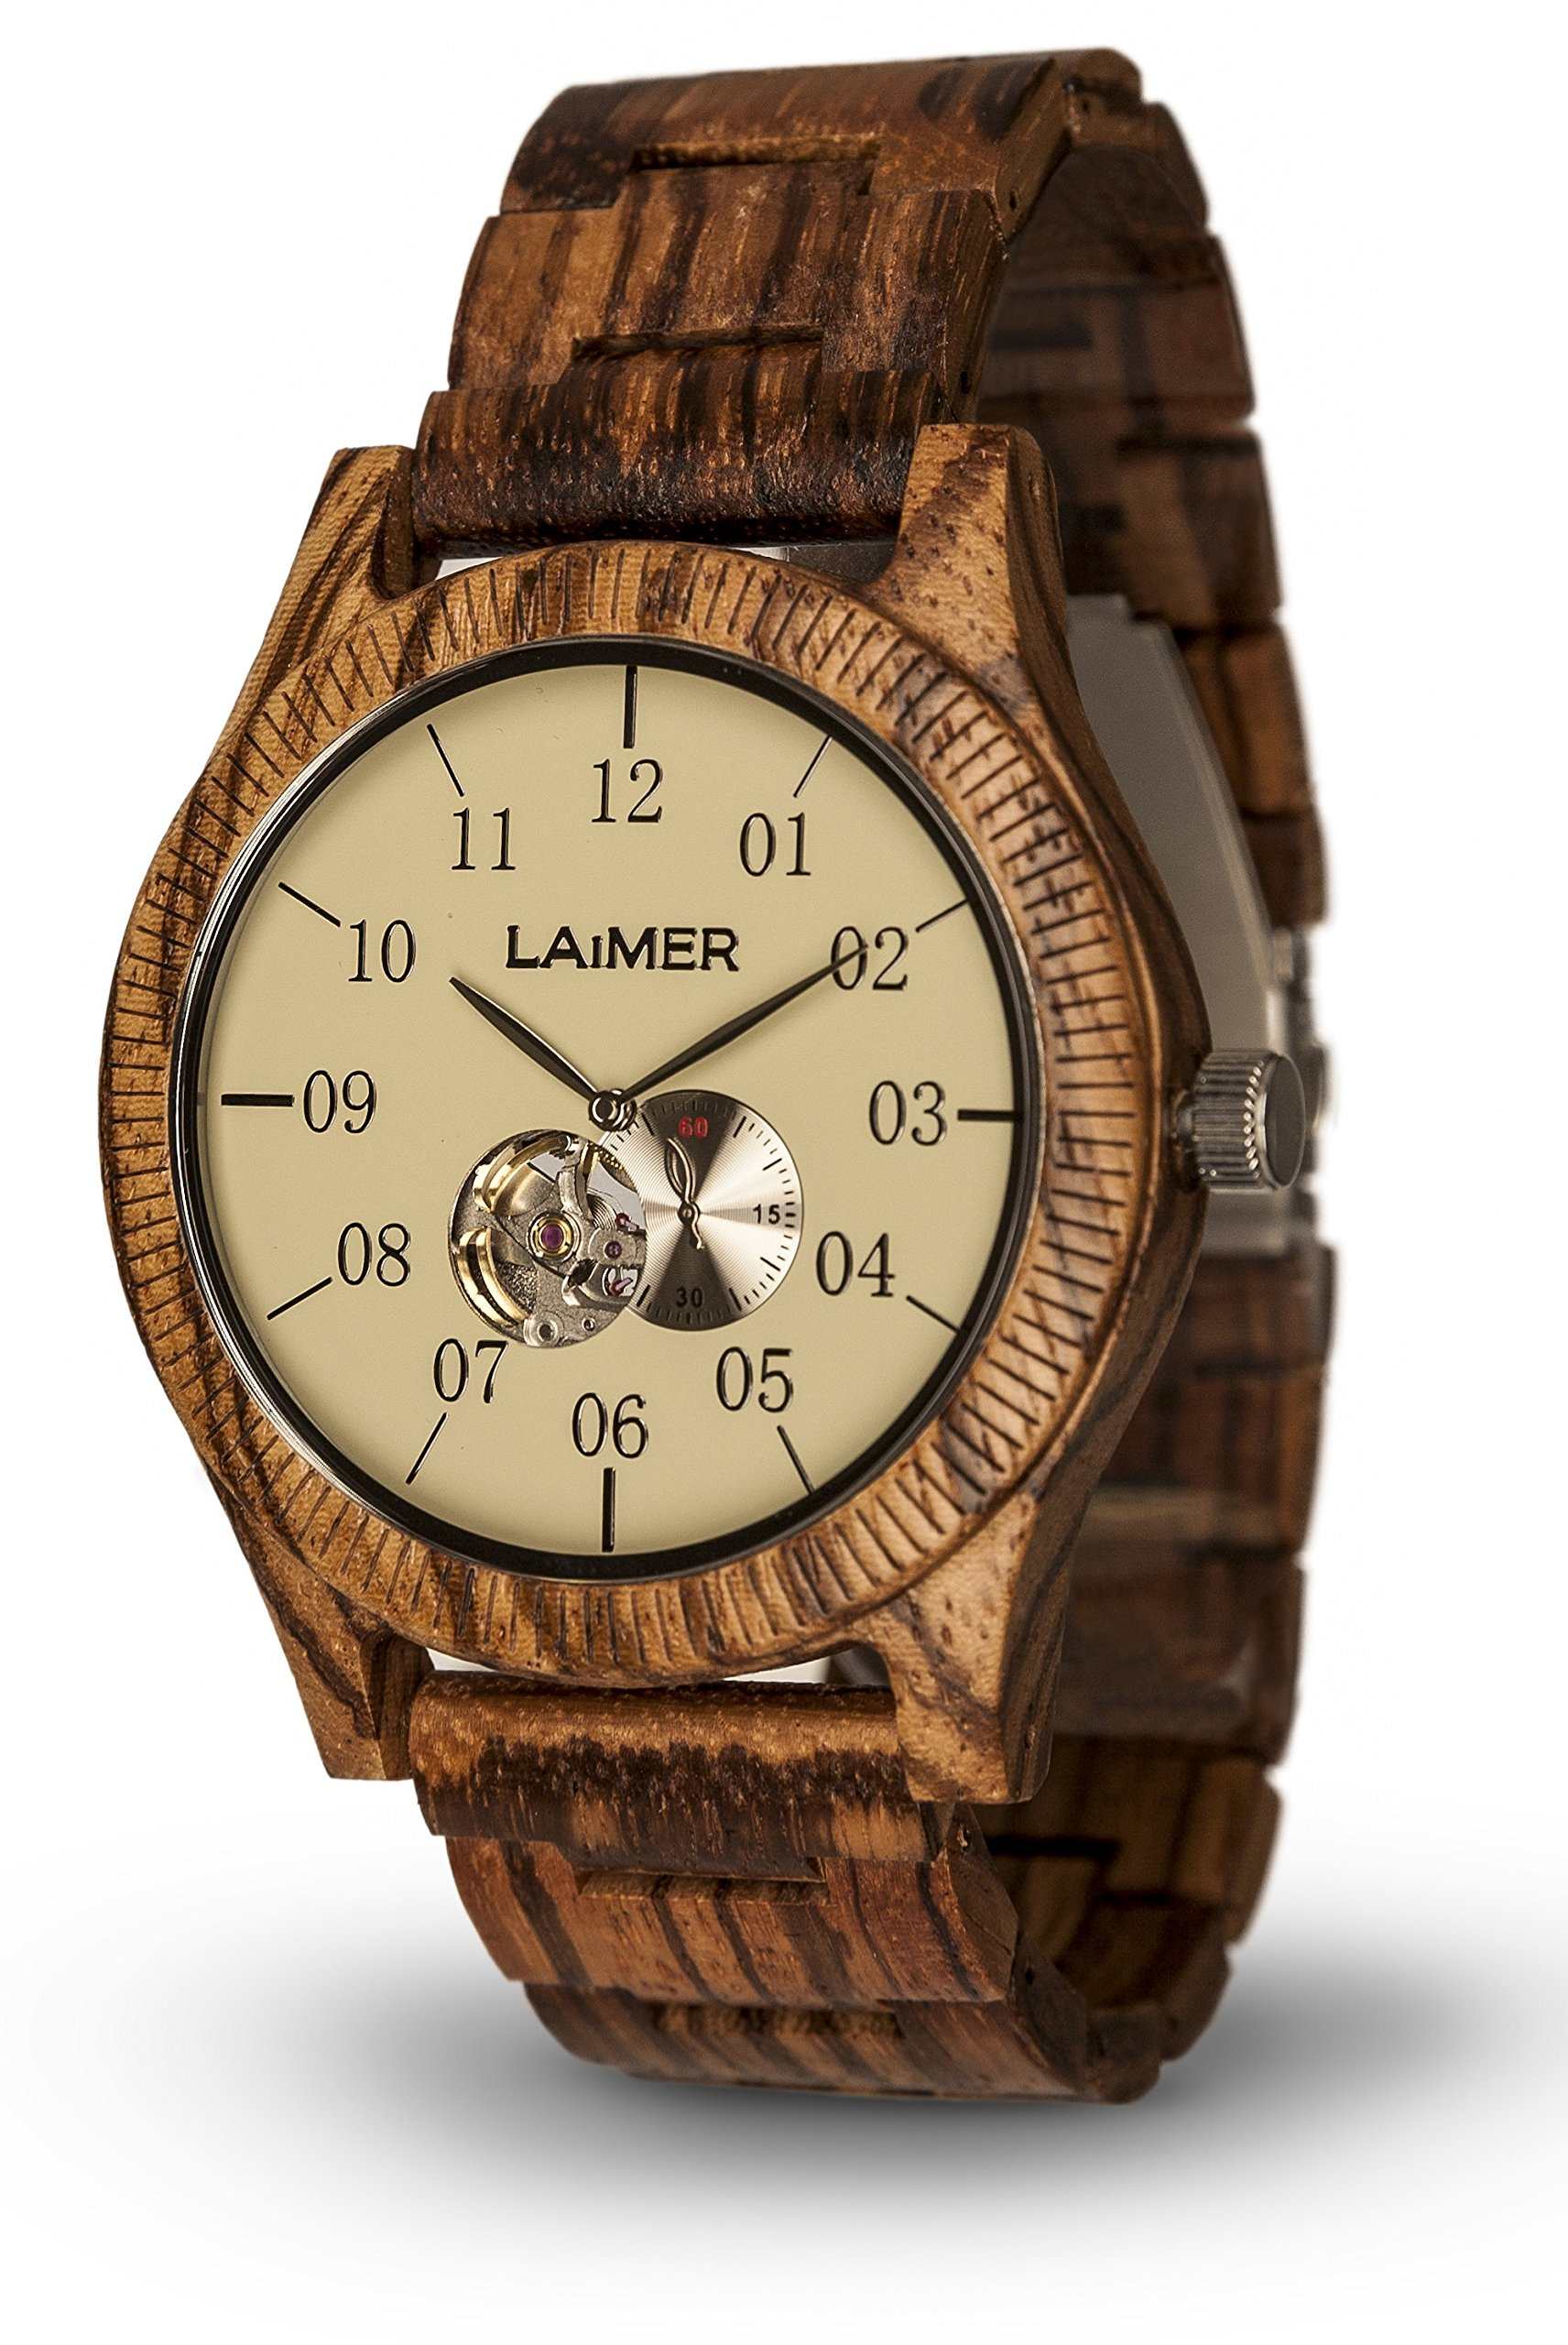 LAiMER Automatic Men's Wooden Watch GRAND EDITION ERIK - Wrist Watch made of natural reclaimed Zebrano Wood - Technology, Nature & Lifestyle